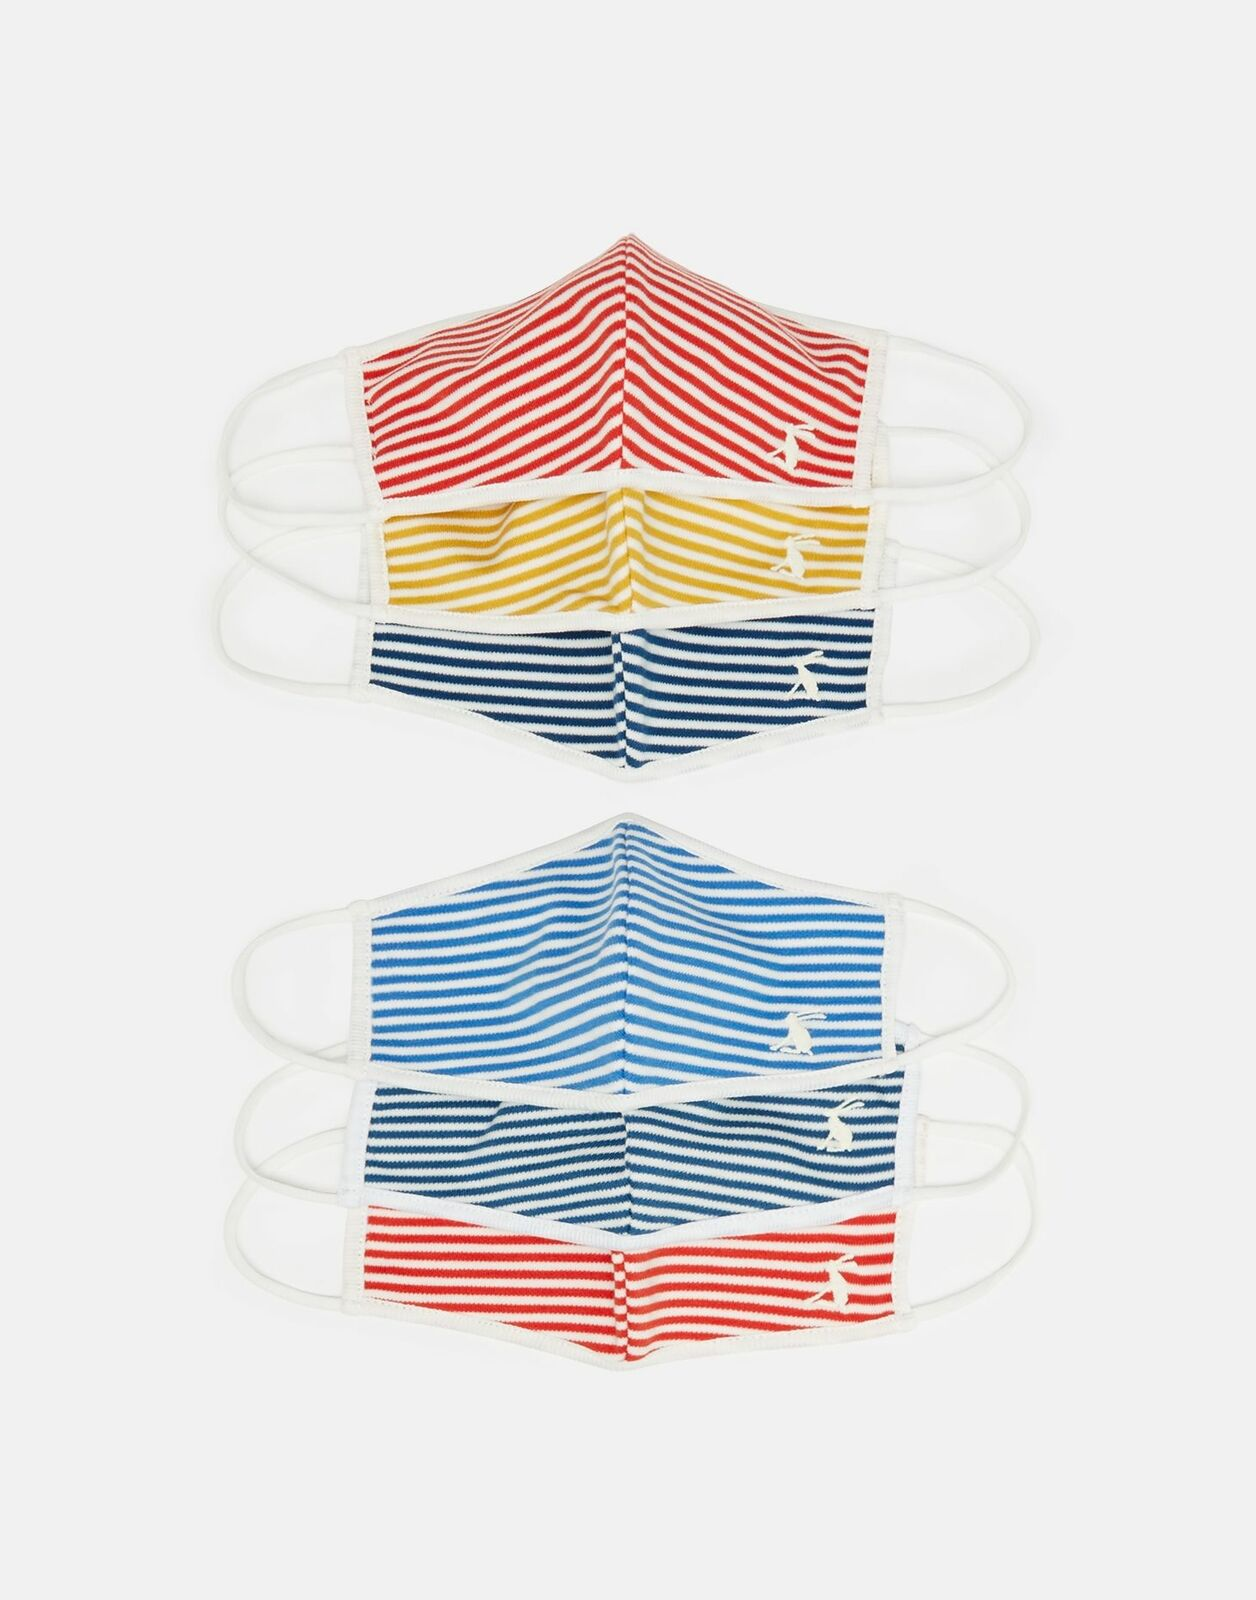 Joules Womens Non Medical Face Covering Family 6-Pack - Multi Stripe - Mixed